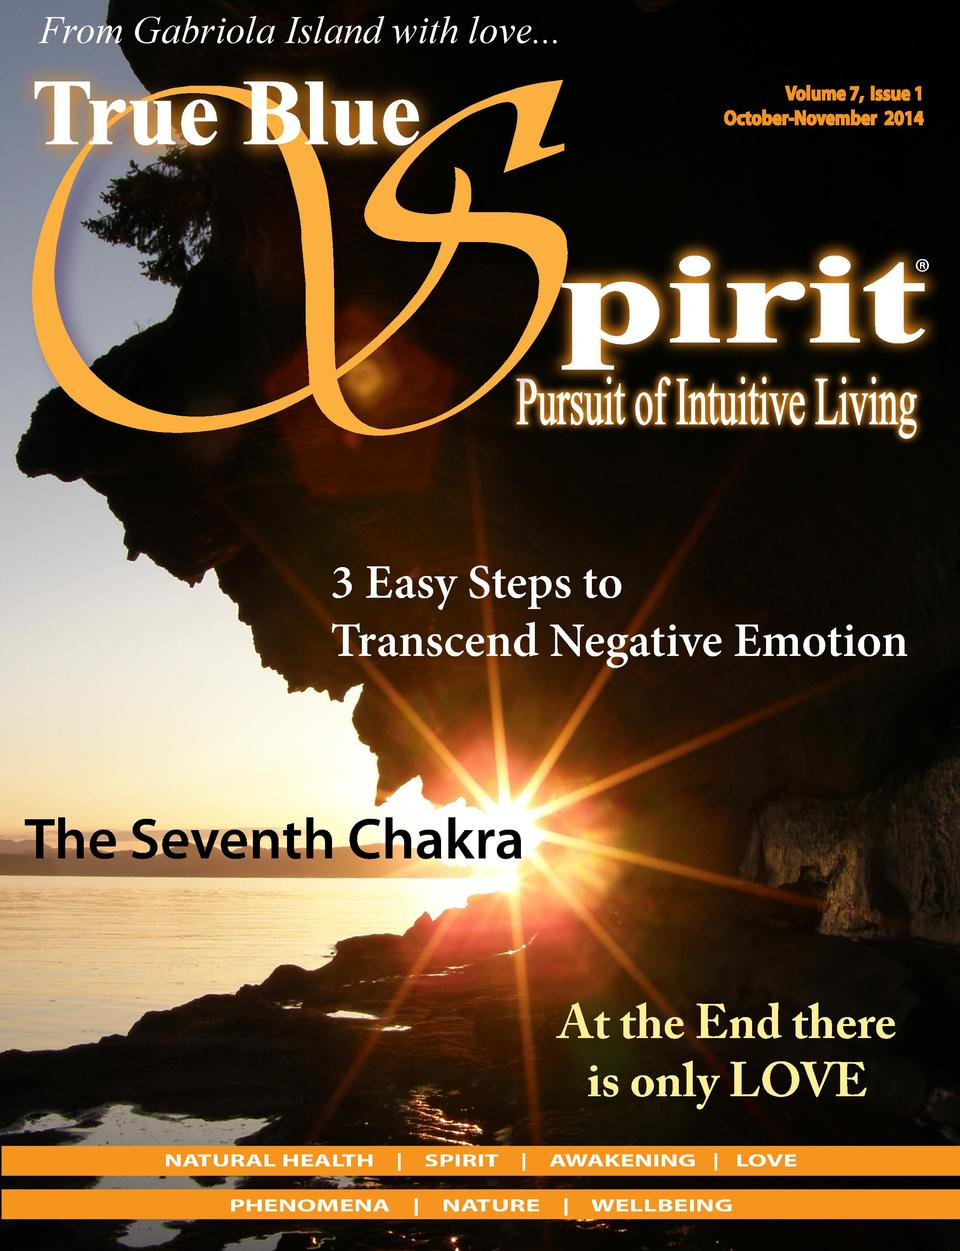 From Gabriola Island with love... Volume 7, Issue 1 October-November 2014      3 Easy Steps to Transcend Negative Emotion ...